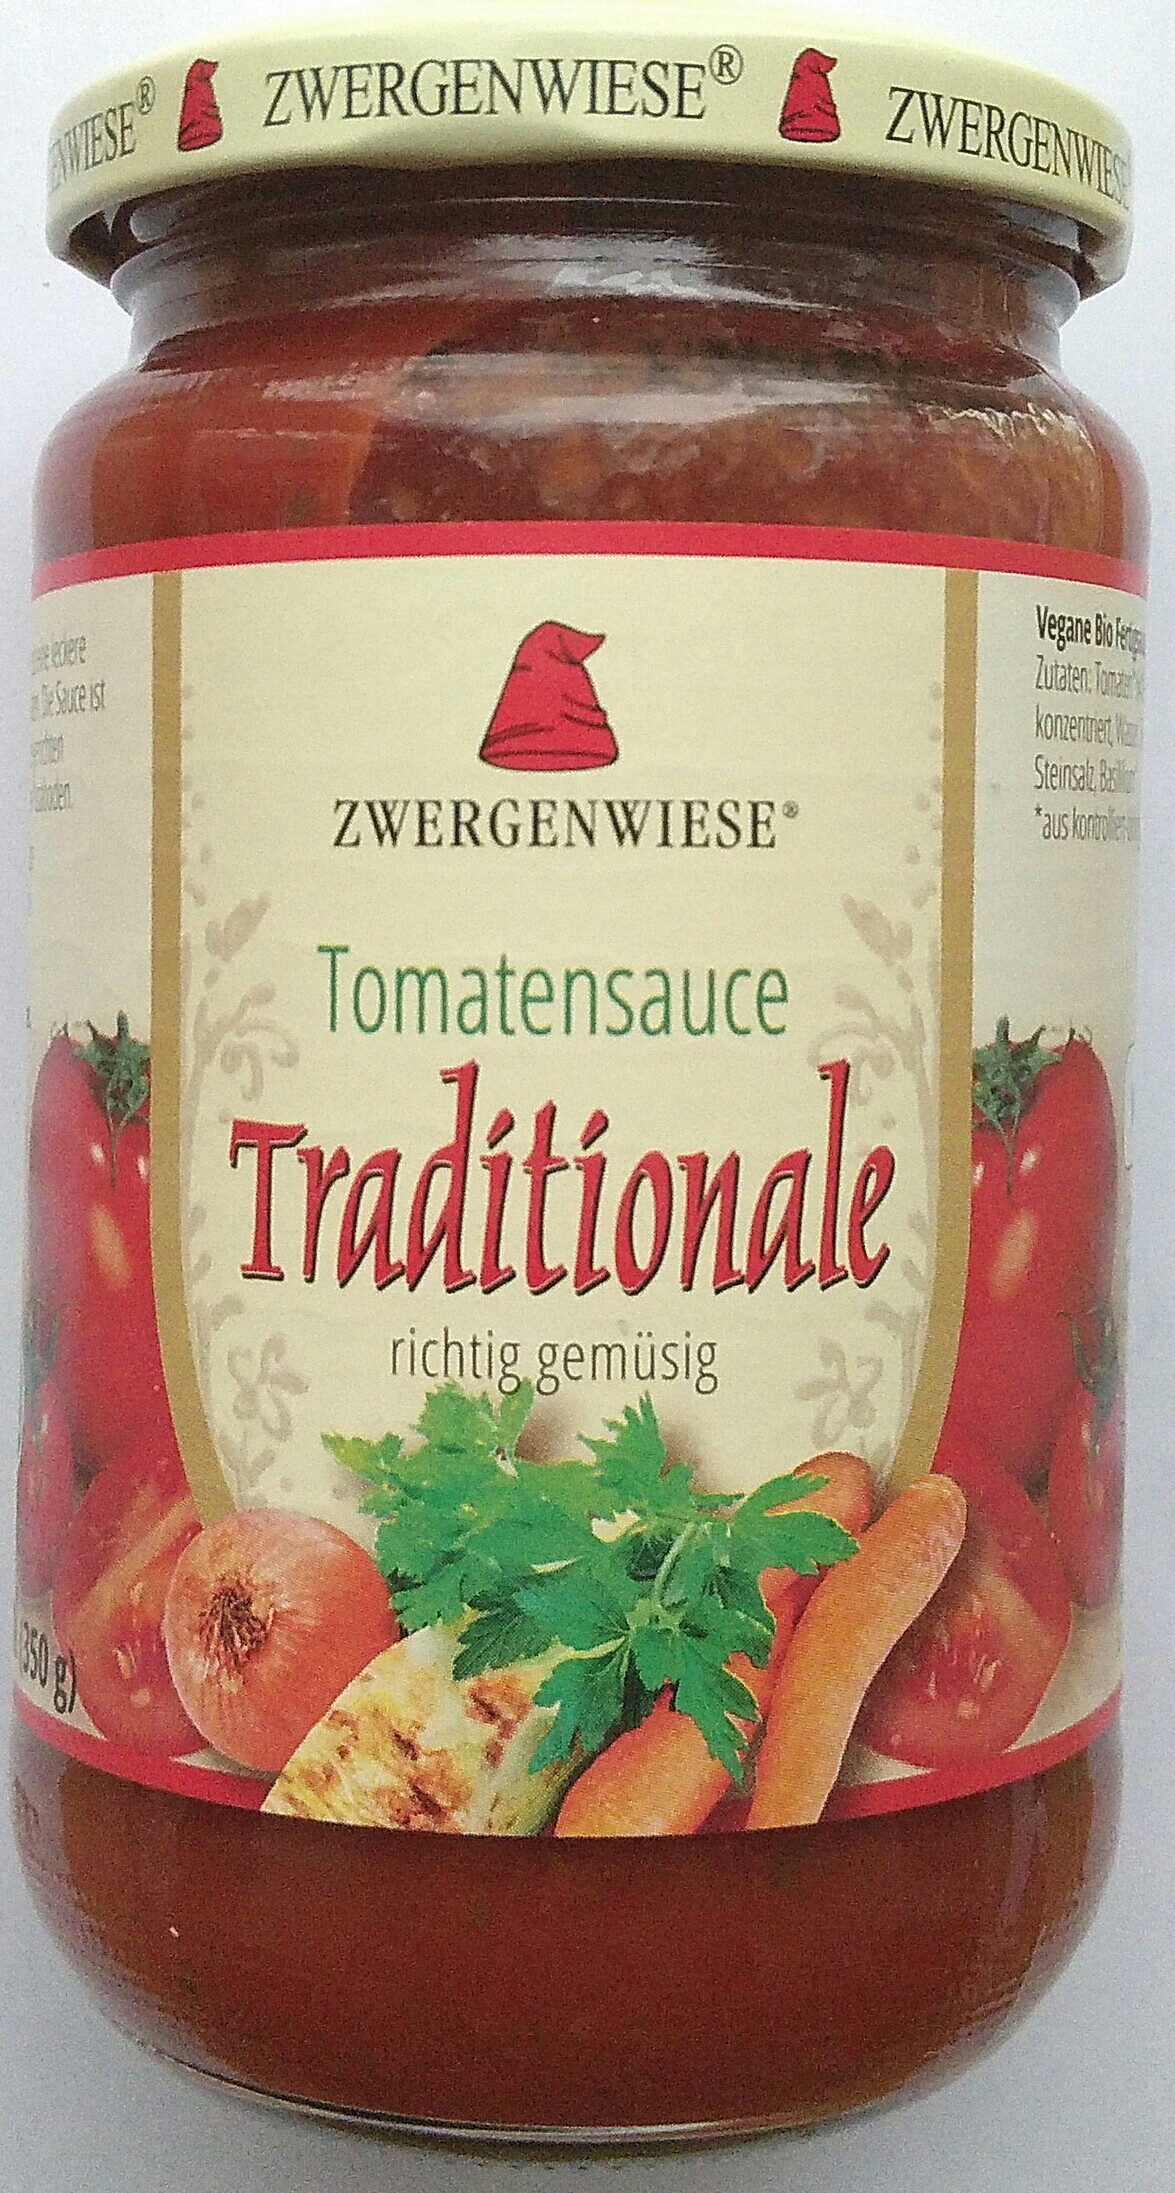 Tomatensauce Traditionale - Product